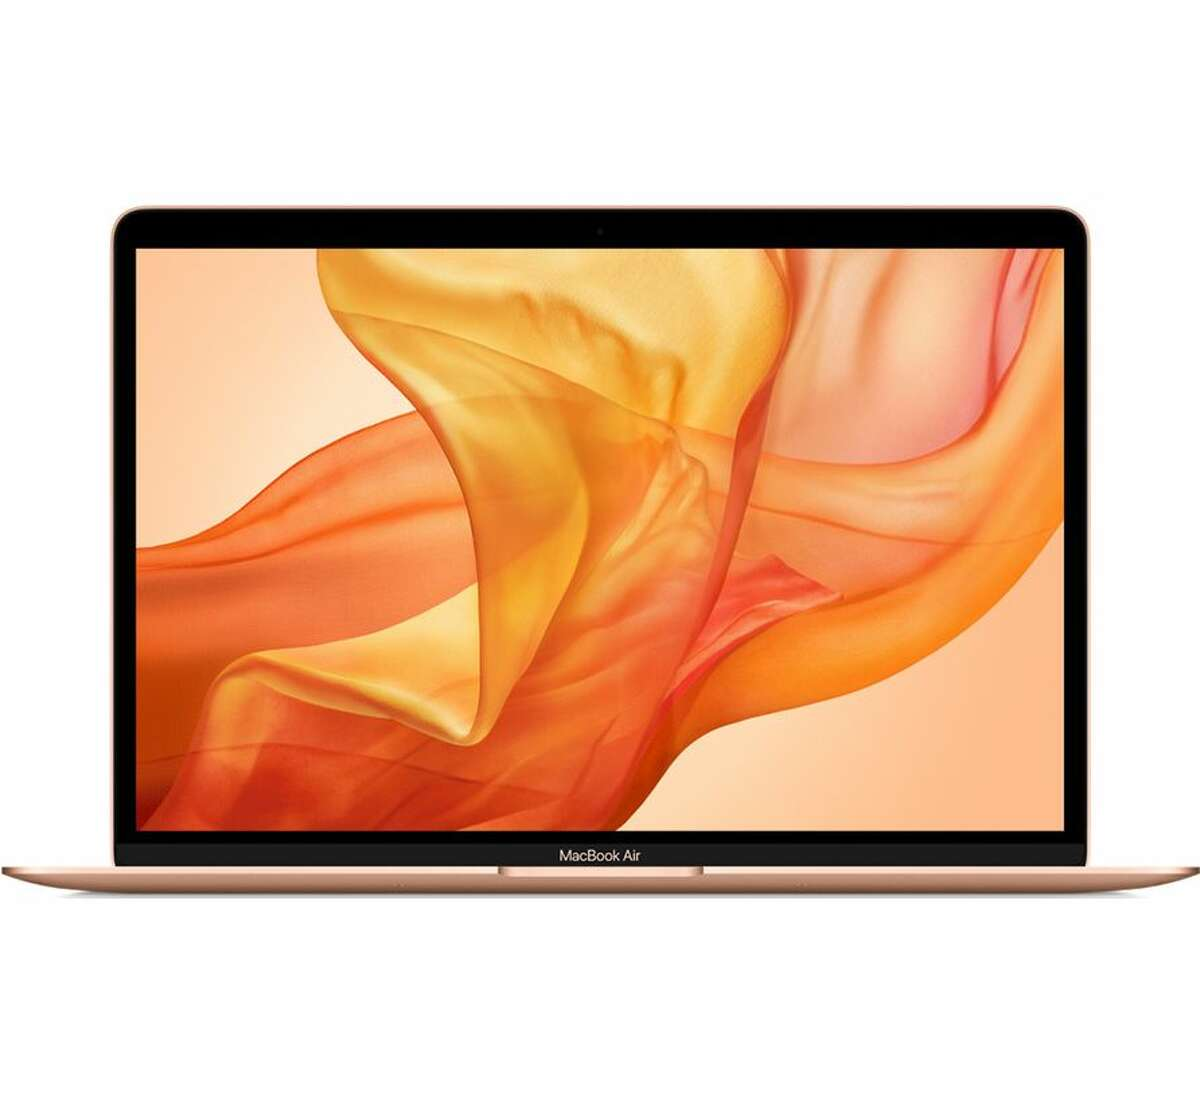 Every year during back-to-school season, Apple offers education pricing on select Mac products starting at $779 for students. This year's lineup includes:Save $100 on the MacBook Air for students and educators.Students and educators can get a MacBook Pro for as low as $1,199 plus free shipping.Save up to $200 on a Mac and get a free pair of AirPods. Plus, get 20 percent off AppleCare+ through Sept. 29.